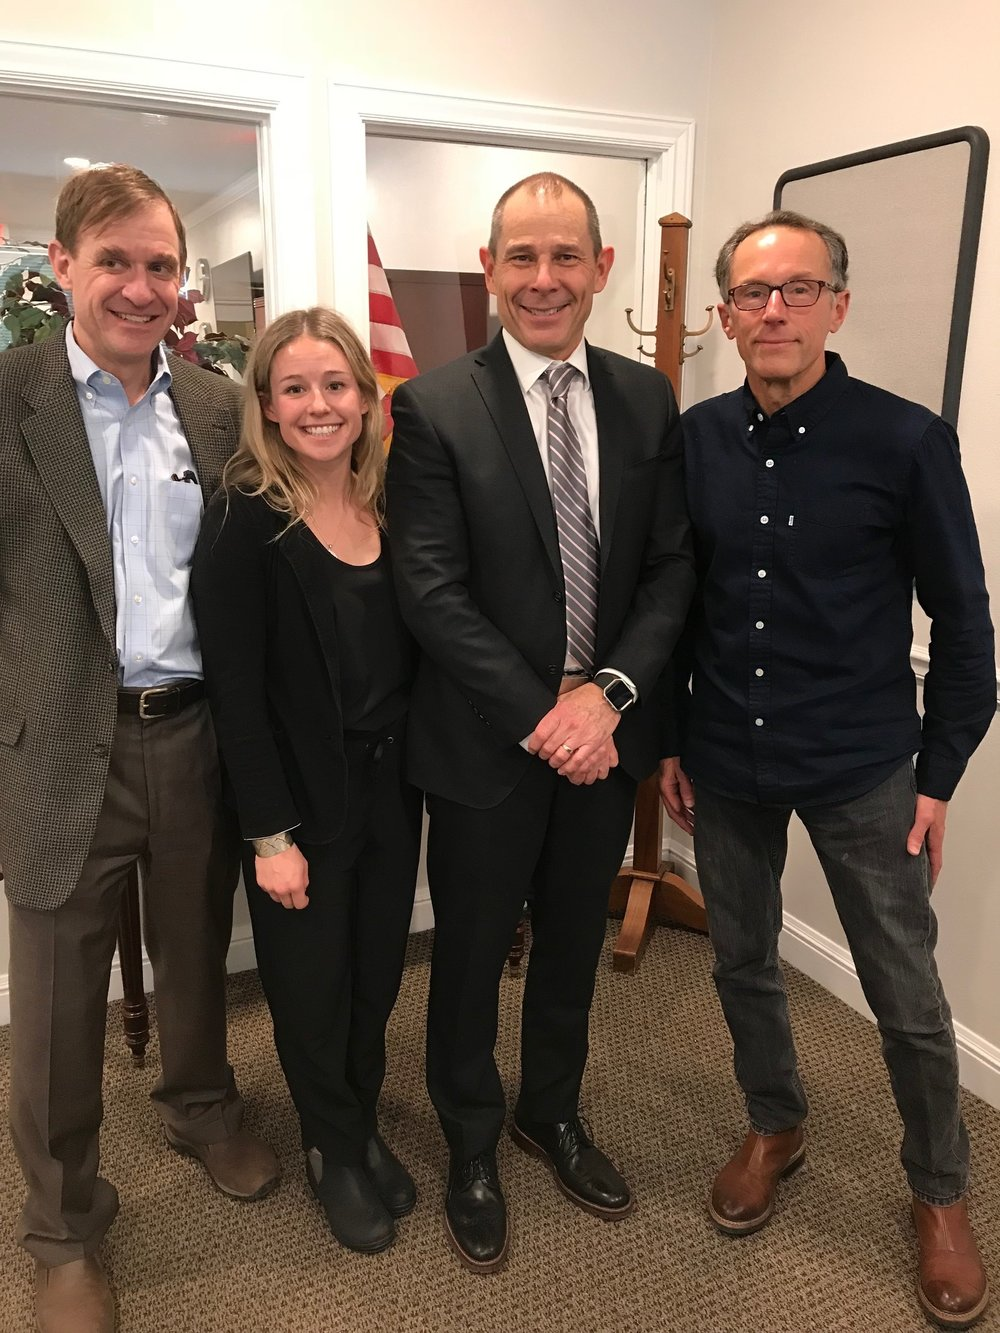 AAC Director and Policy Committee Member Peter Metcalf, incoming Director John Bird, and professional athlete and AAC member Caroline Gleich met with Congressman John Curtis to discuss the  AAC's opposition  to his bill on Bears Ears.